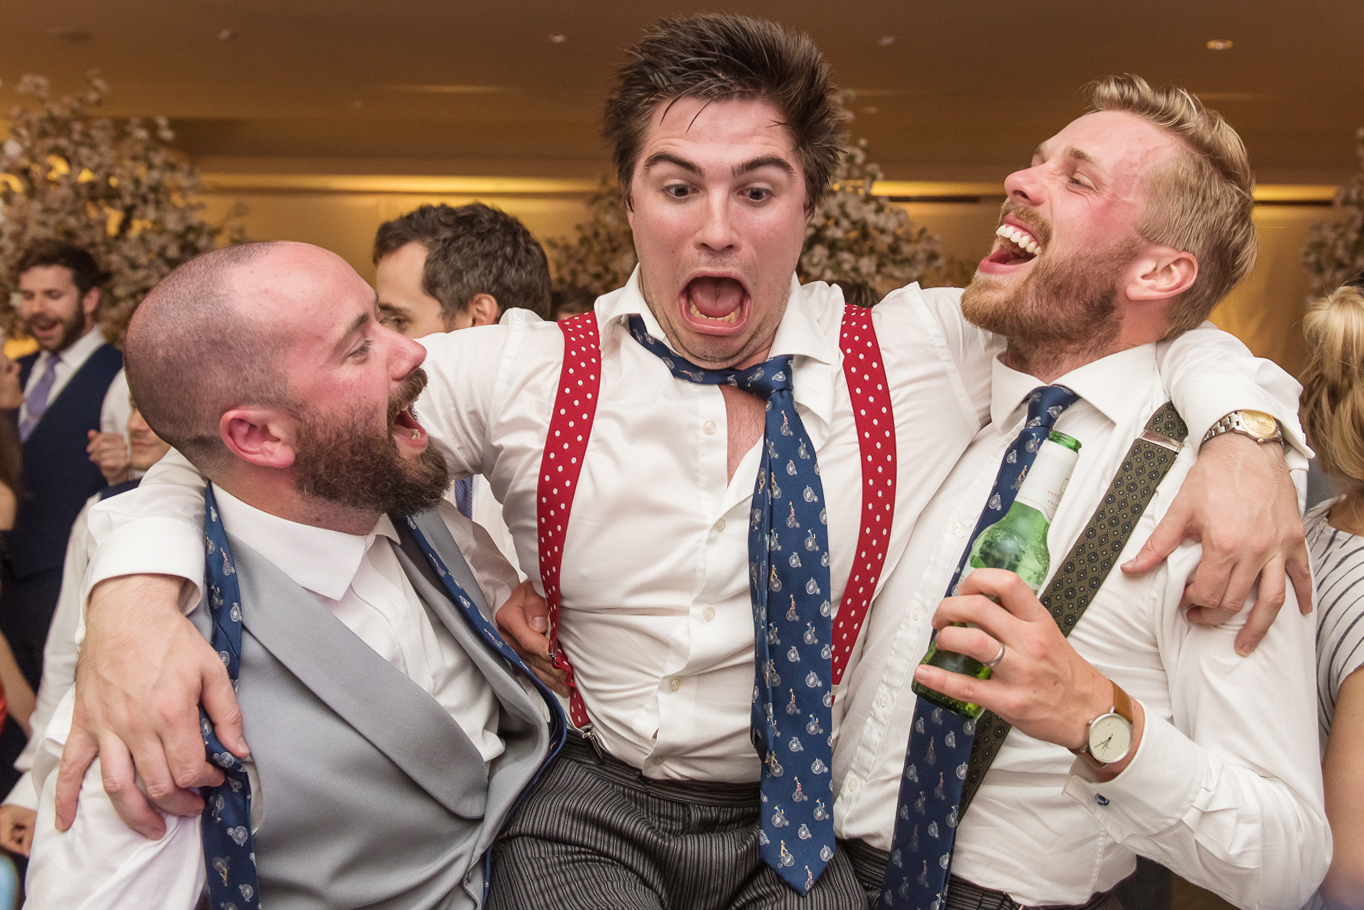 Groom and friends on the dance floor